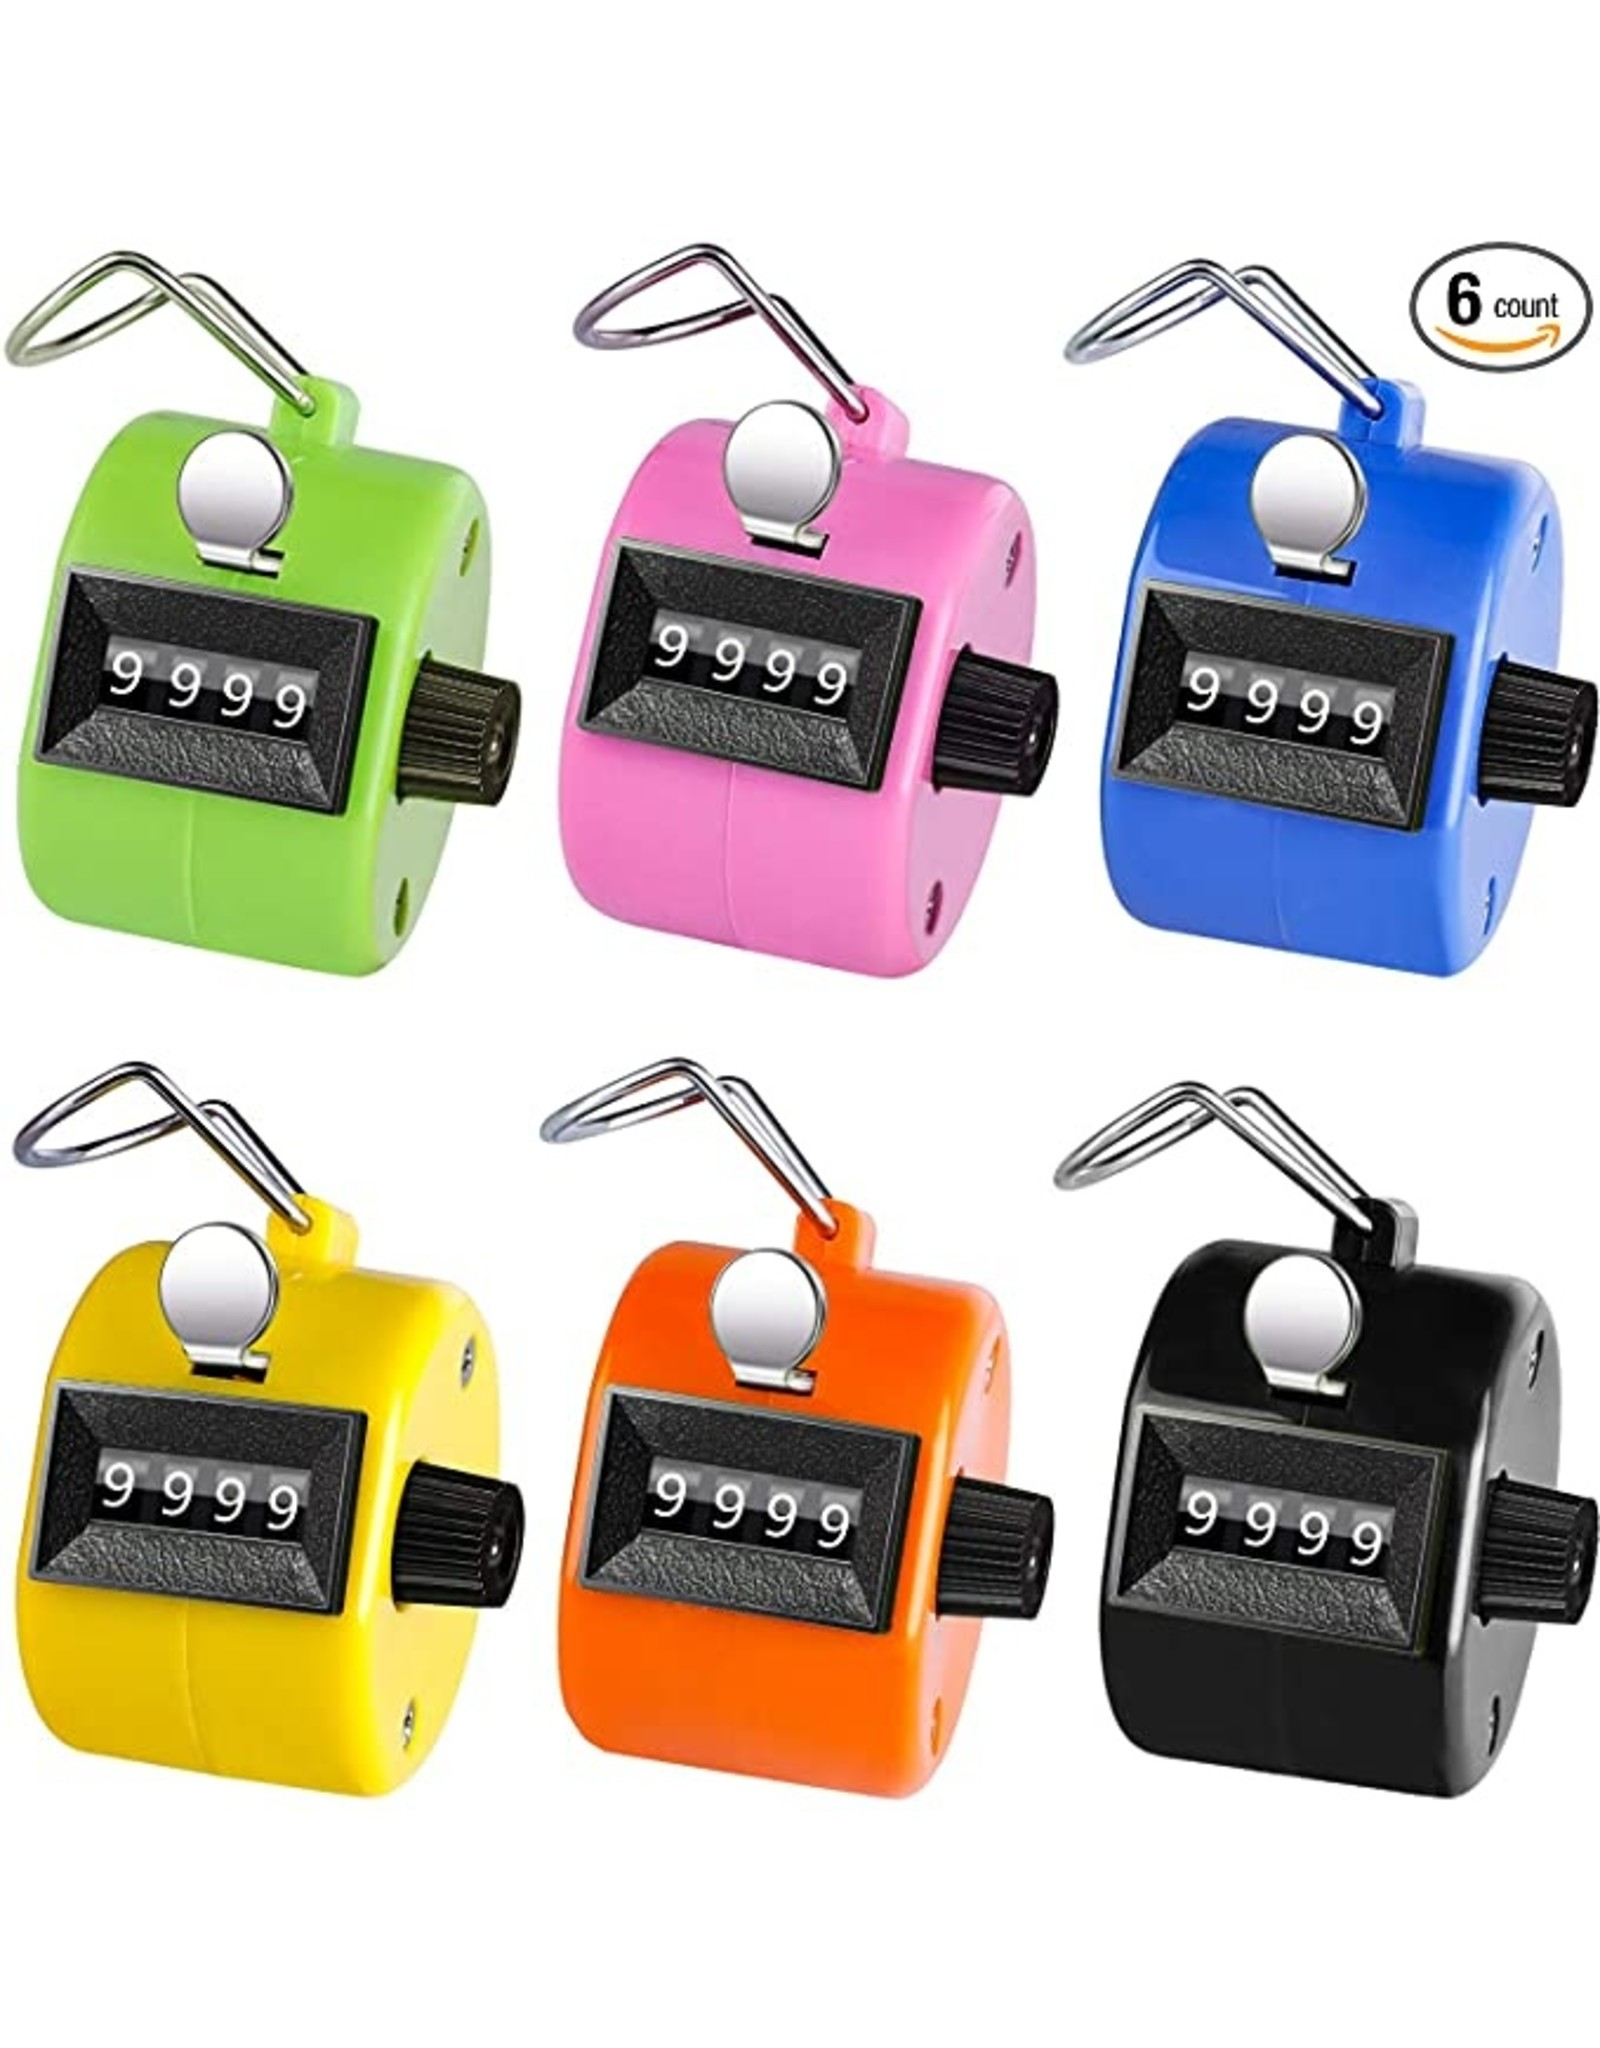 Row Counter Clickers